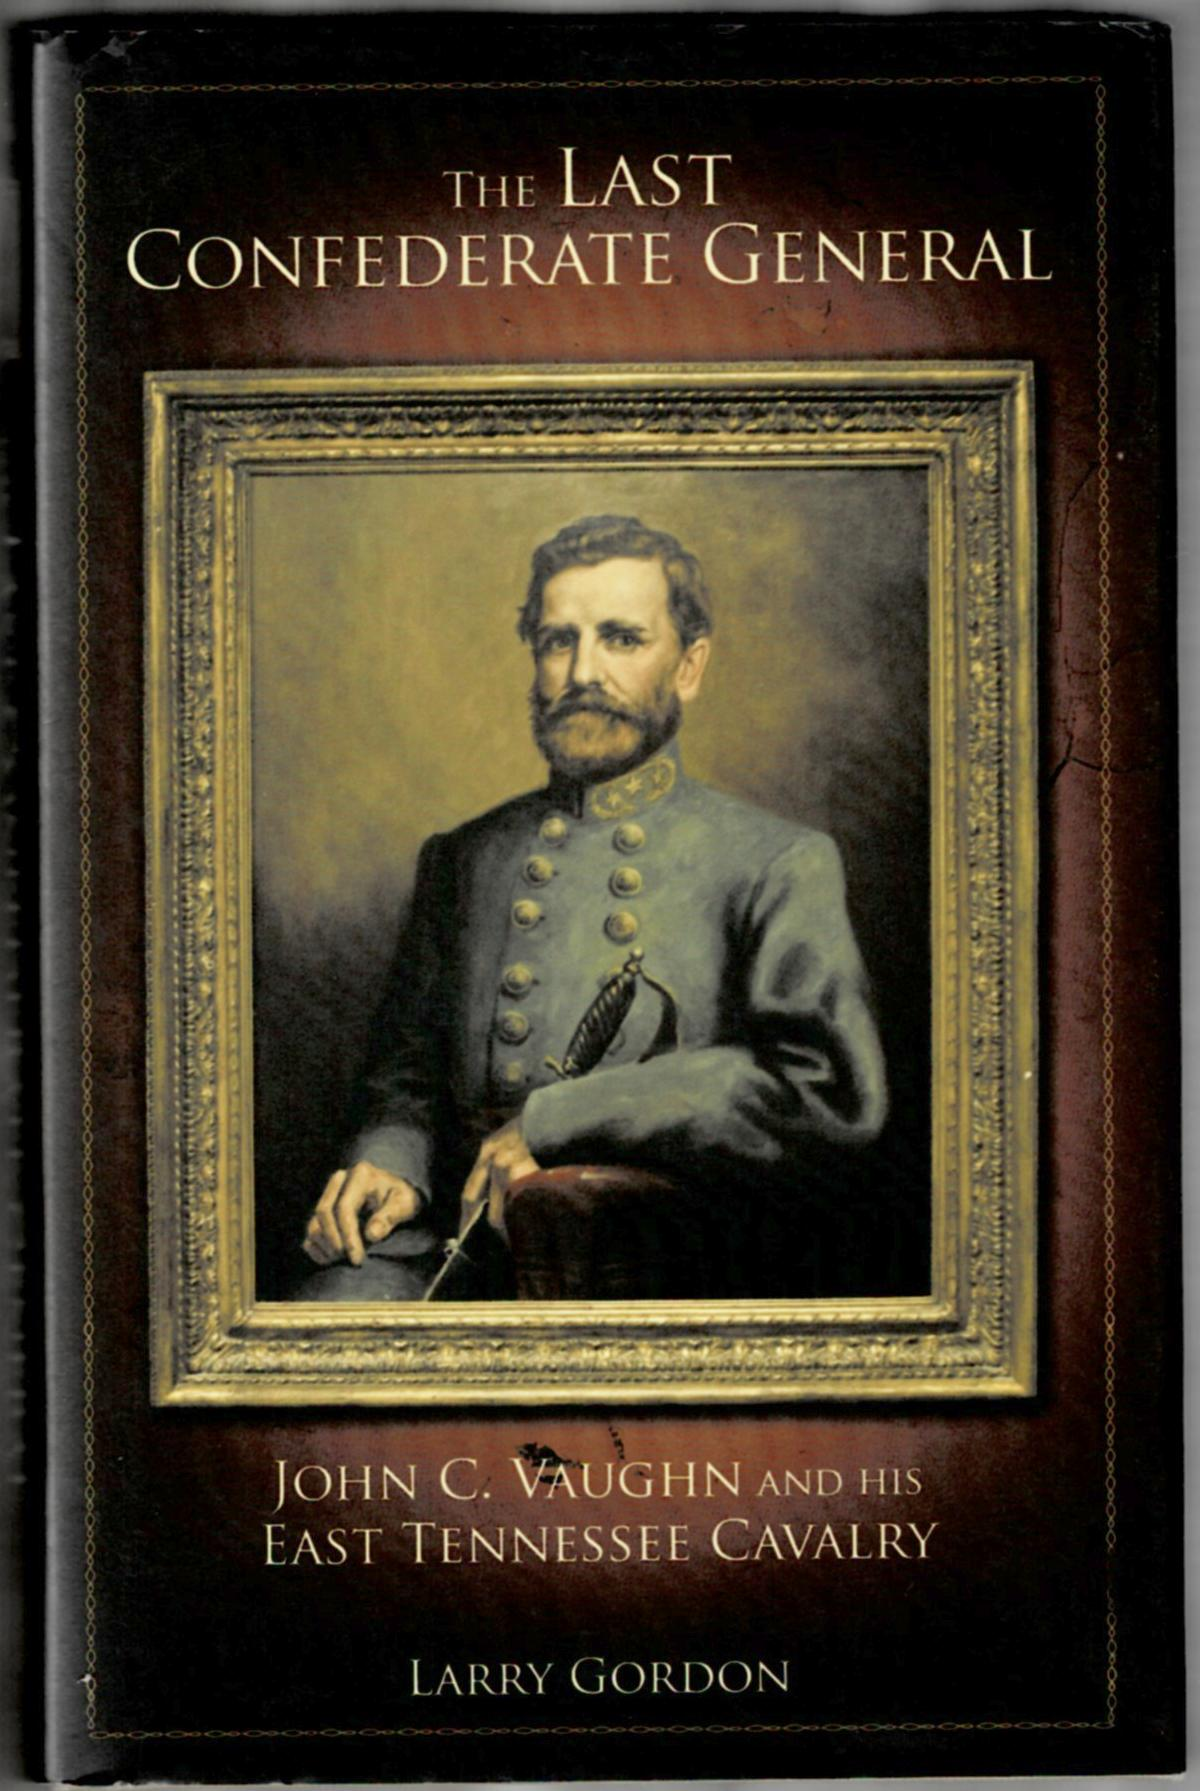 Image for The Last Confederate General: John C. Vaughn and His East Tennessee Cavalry